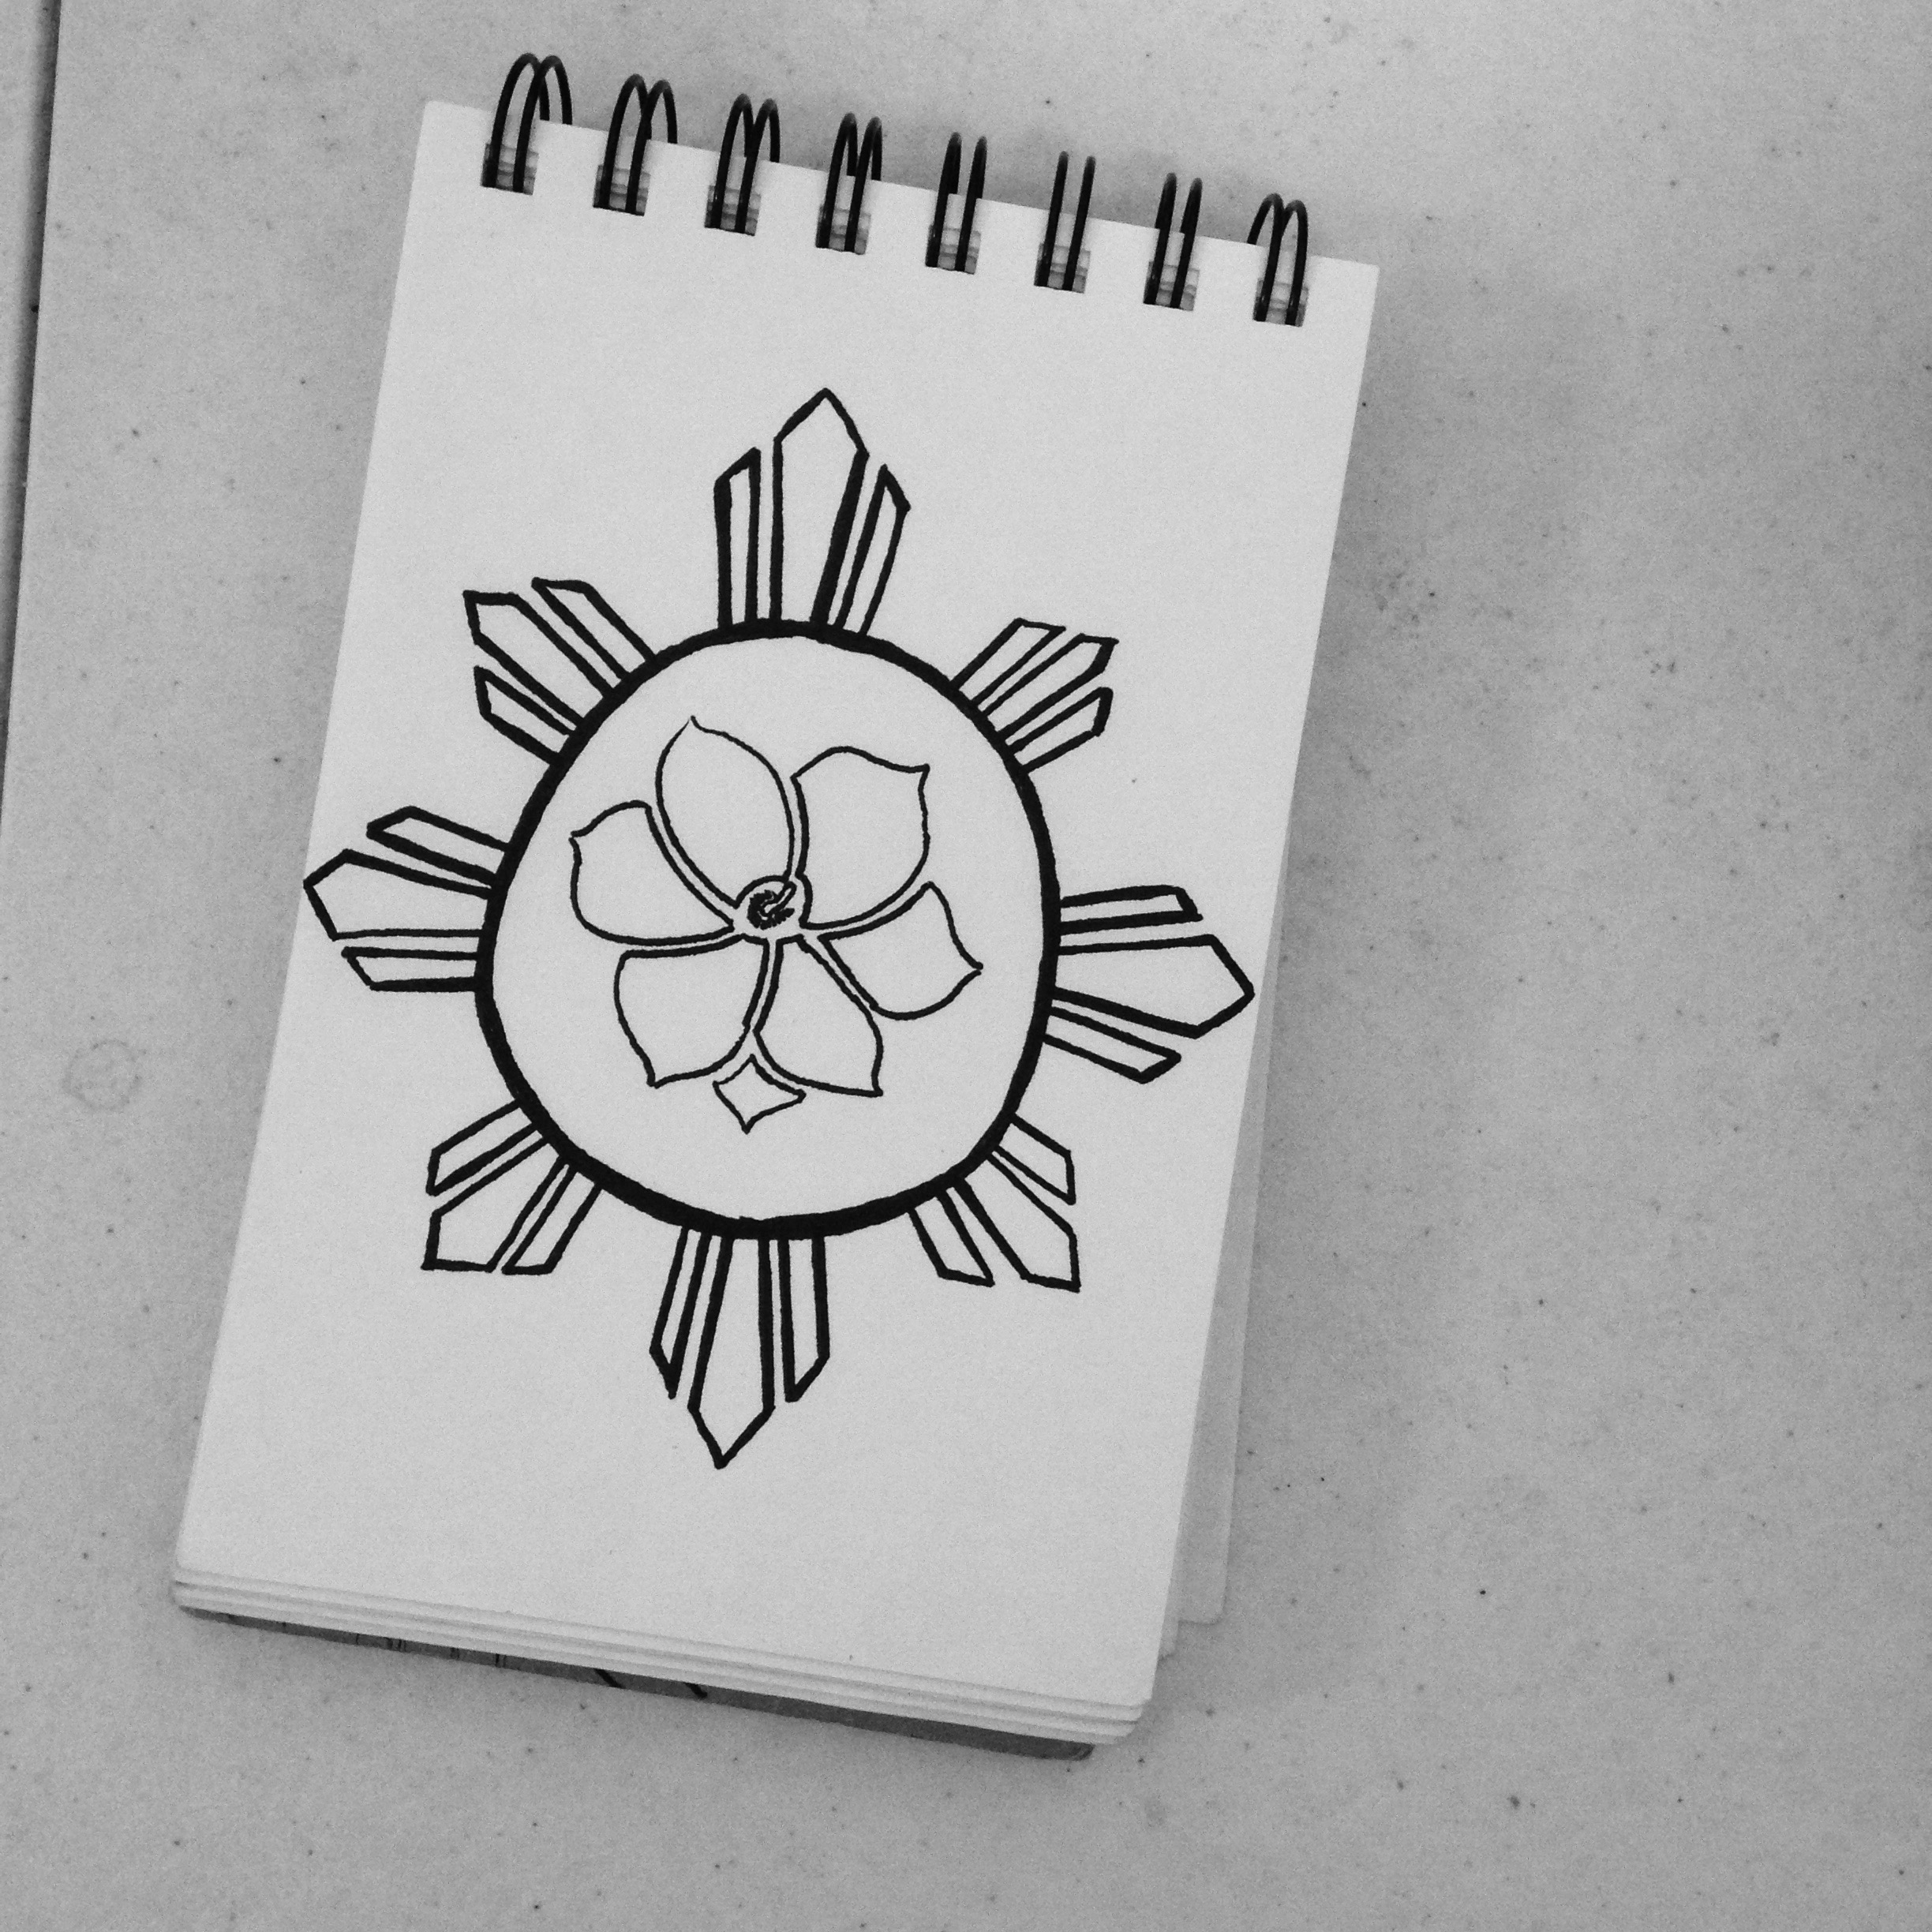 still working on this piece. it's a sun with a sampaguita in it.